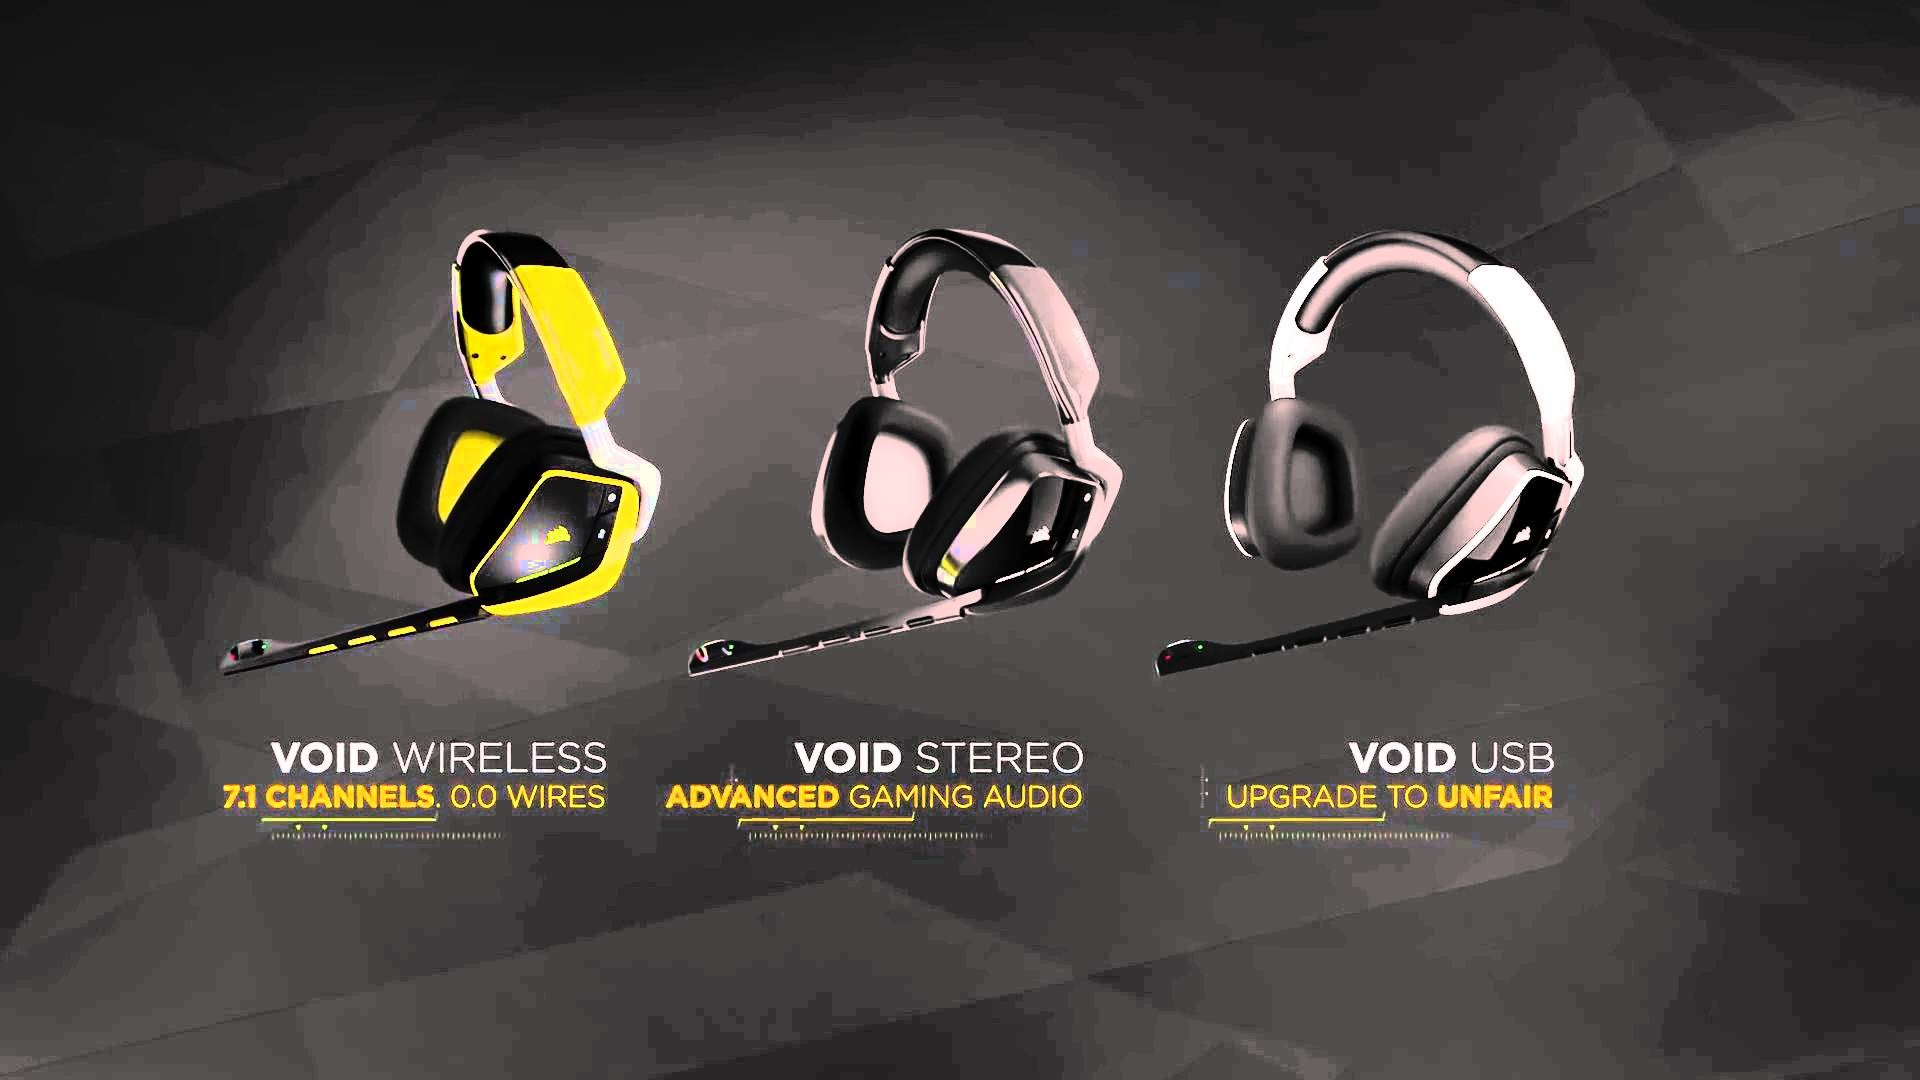 Corsair Void Gaming Headsets the Official Product Trailer